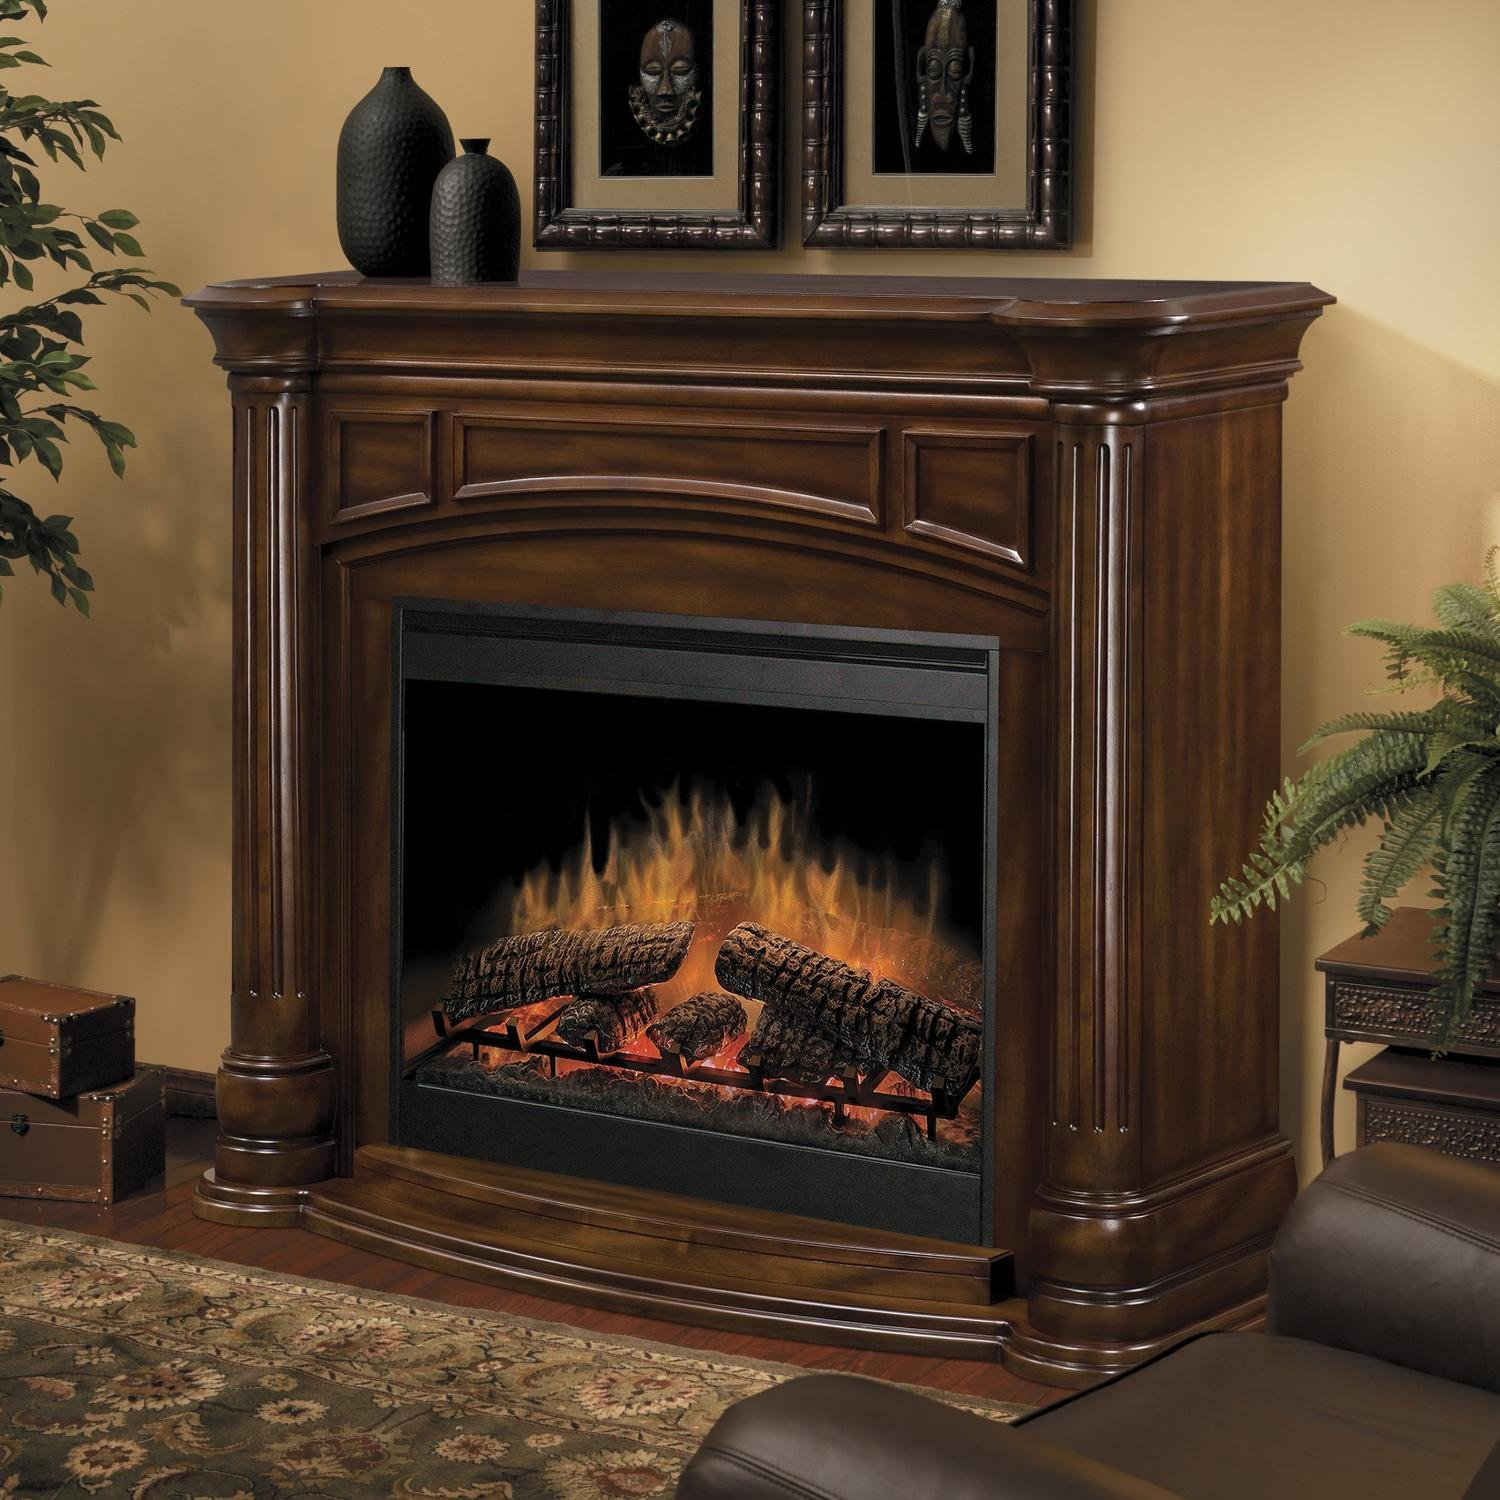 heaters insert fireplace air flame burner warm electric remote item heating optical artificial controlled blower